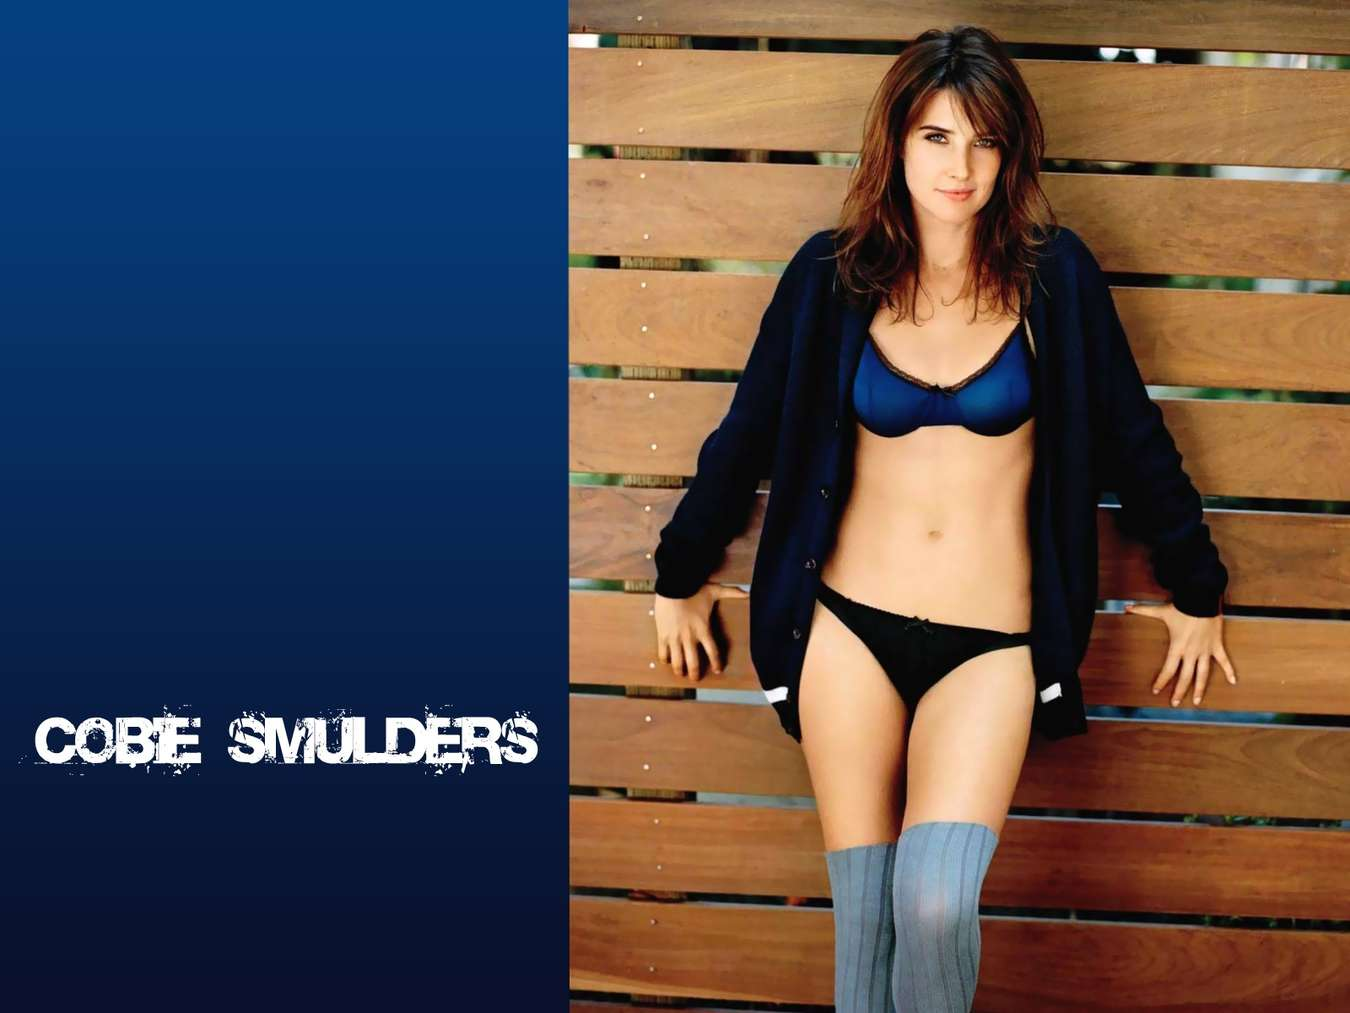 Cobie-Smulders-Hot-15-Wallpapers--05